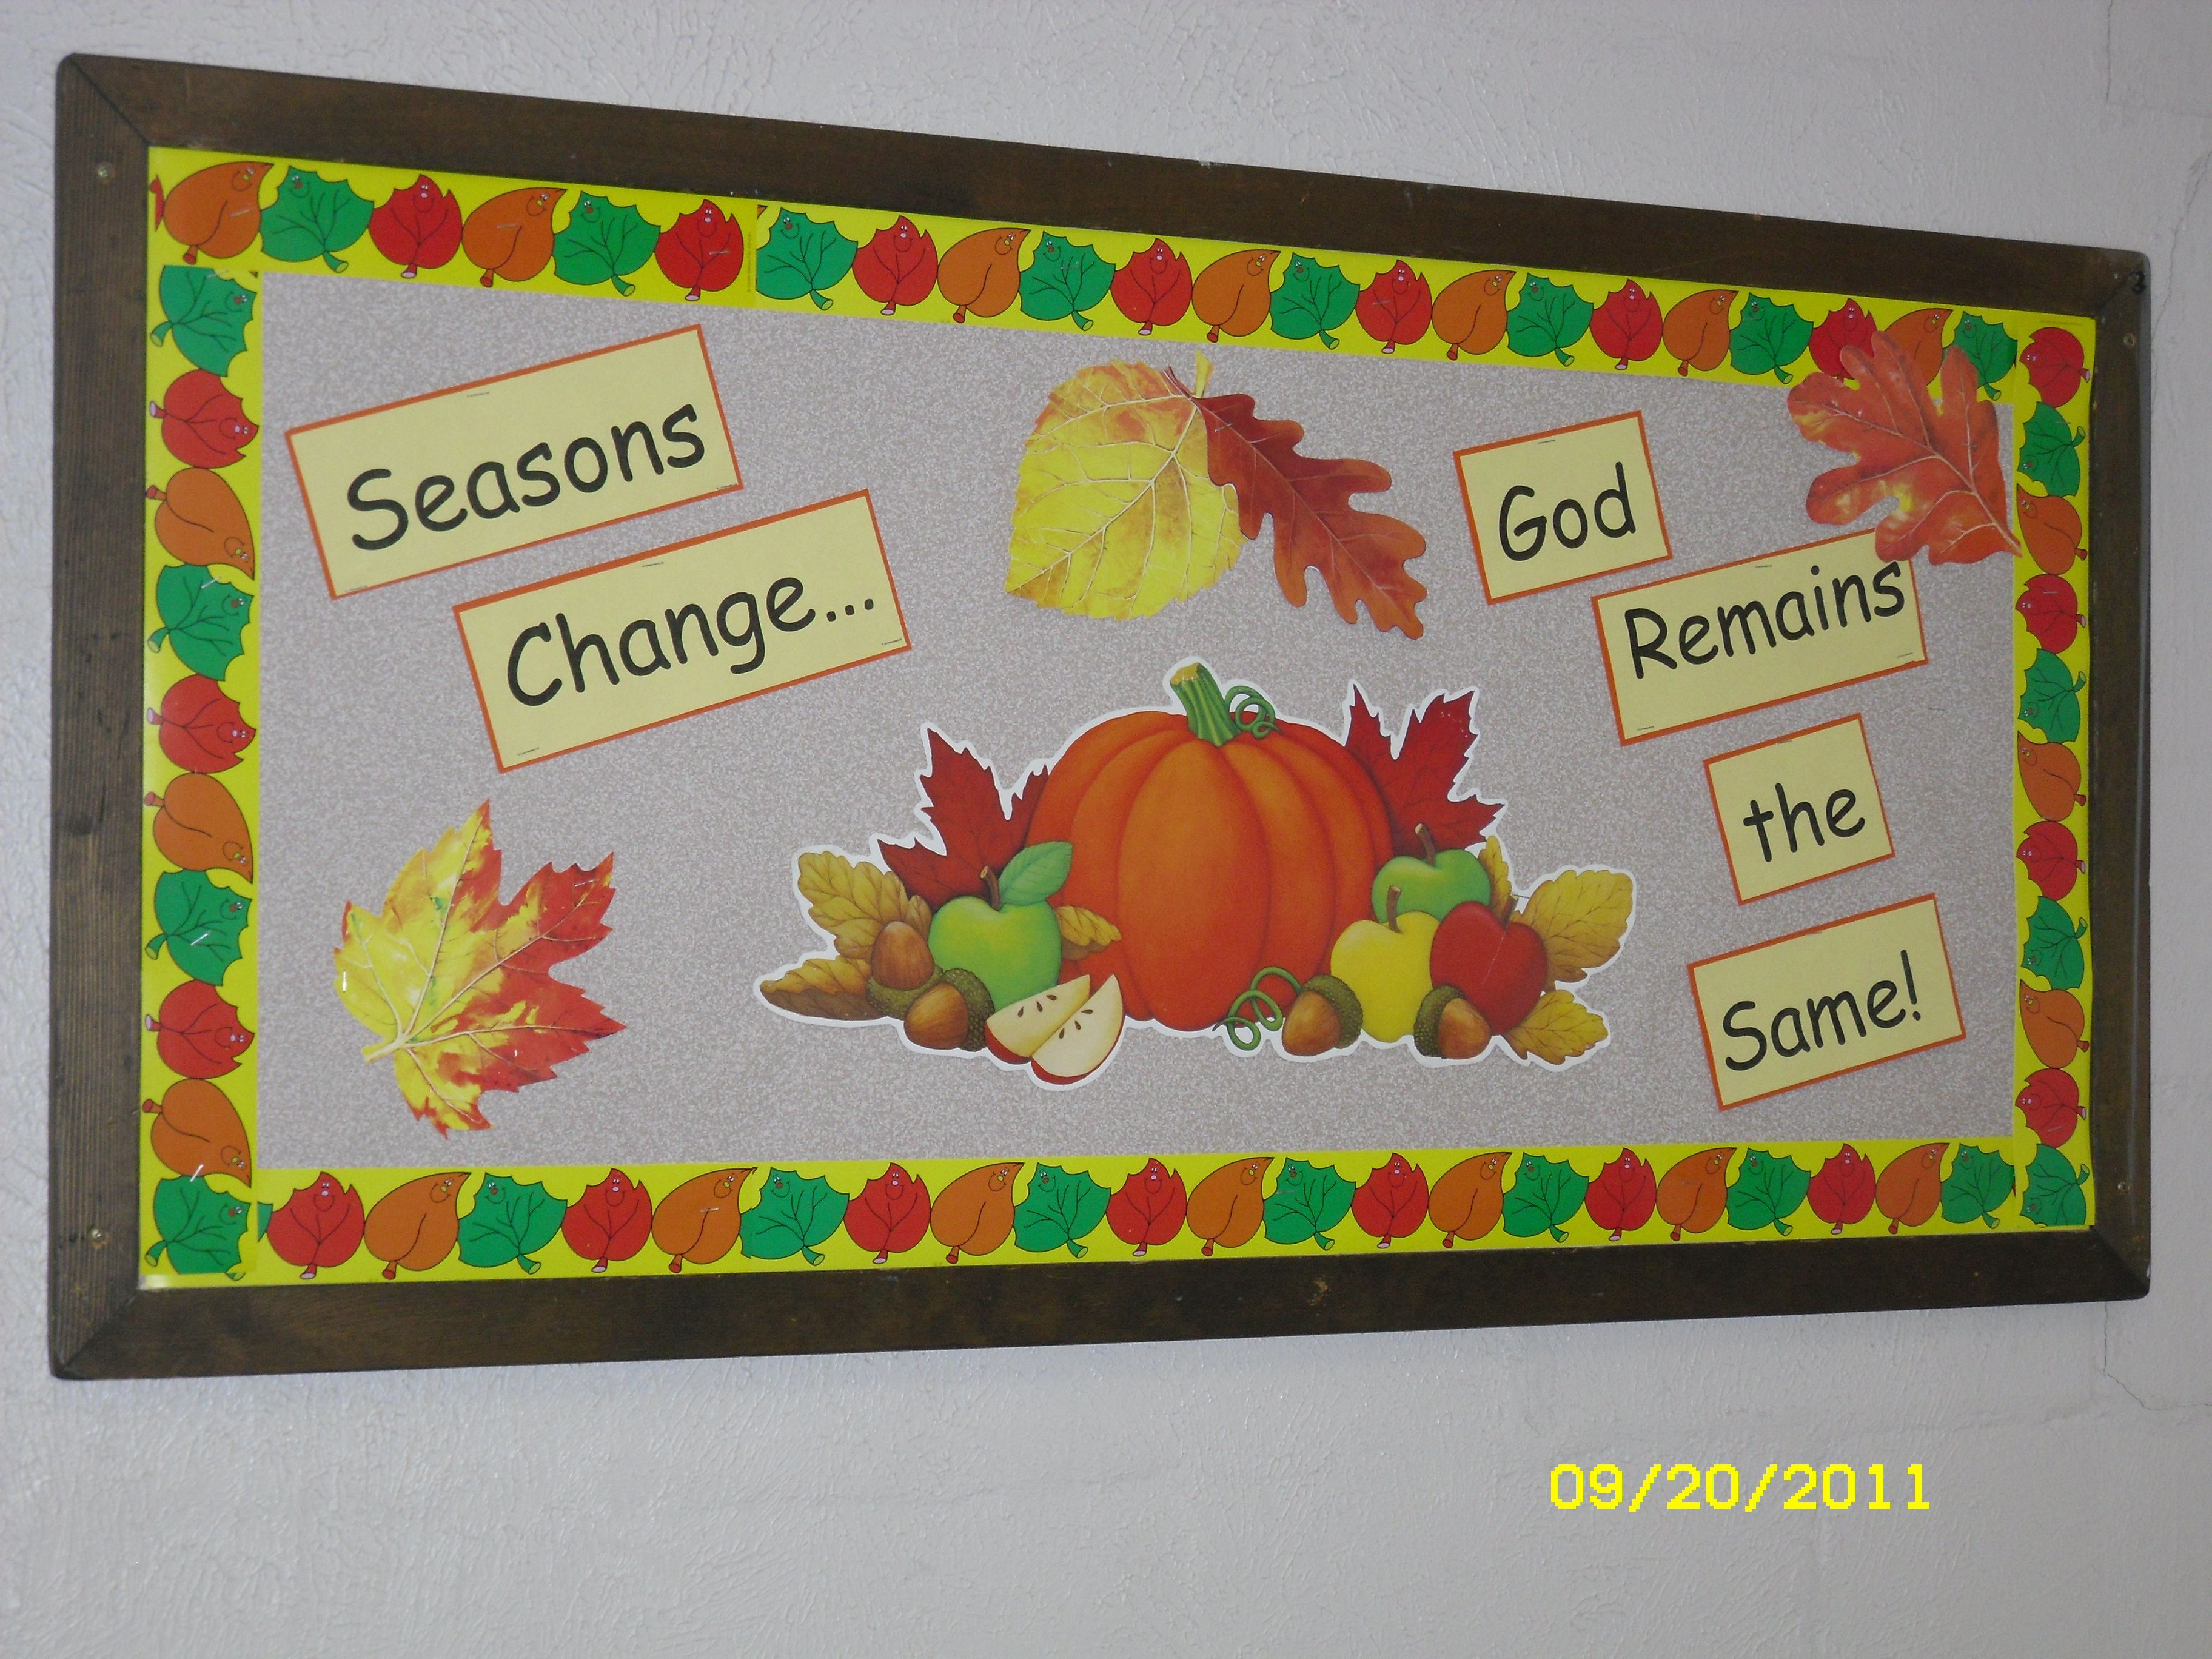 View Source Image Fall Church Bulletin Boards Christian